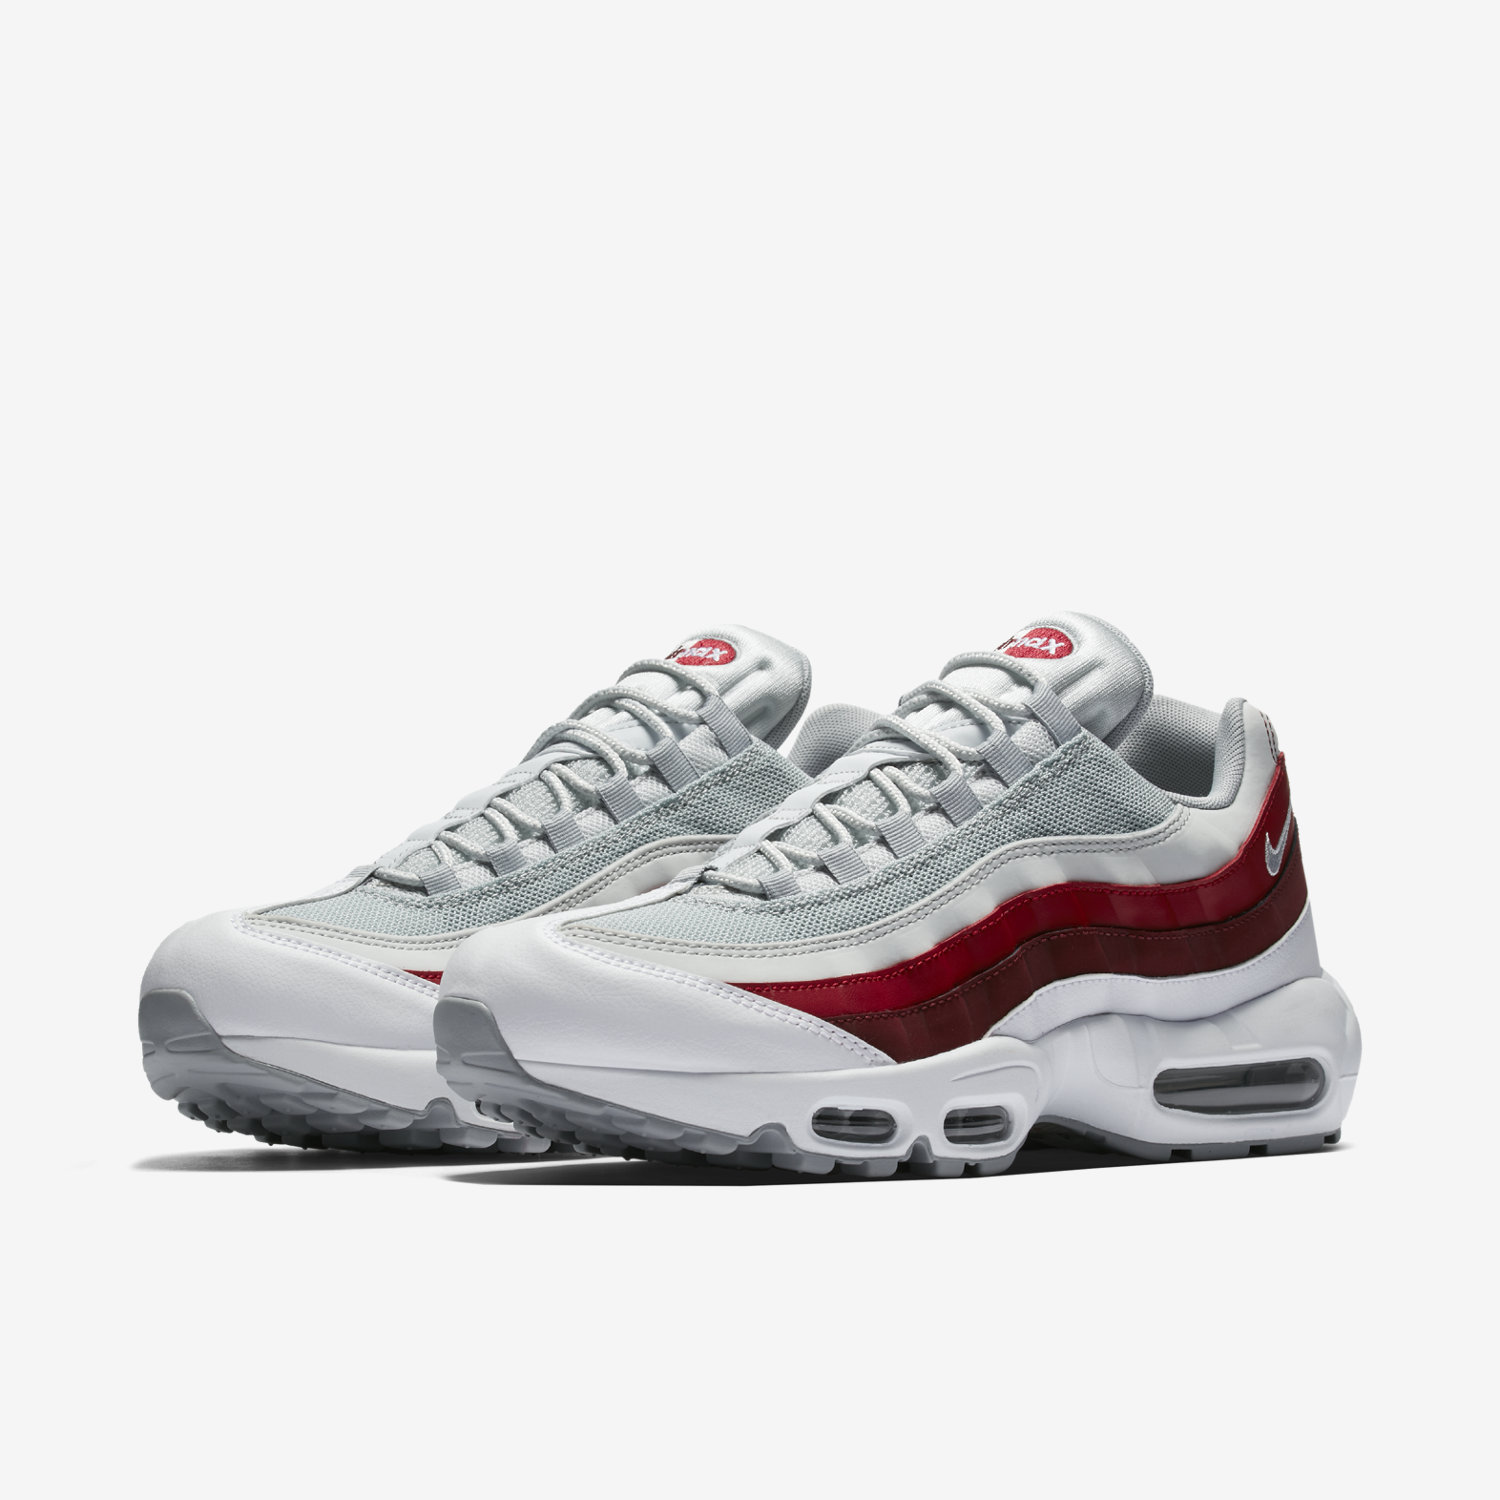 air max 95 premium rejuvenation green bean/anthracite grass Air